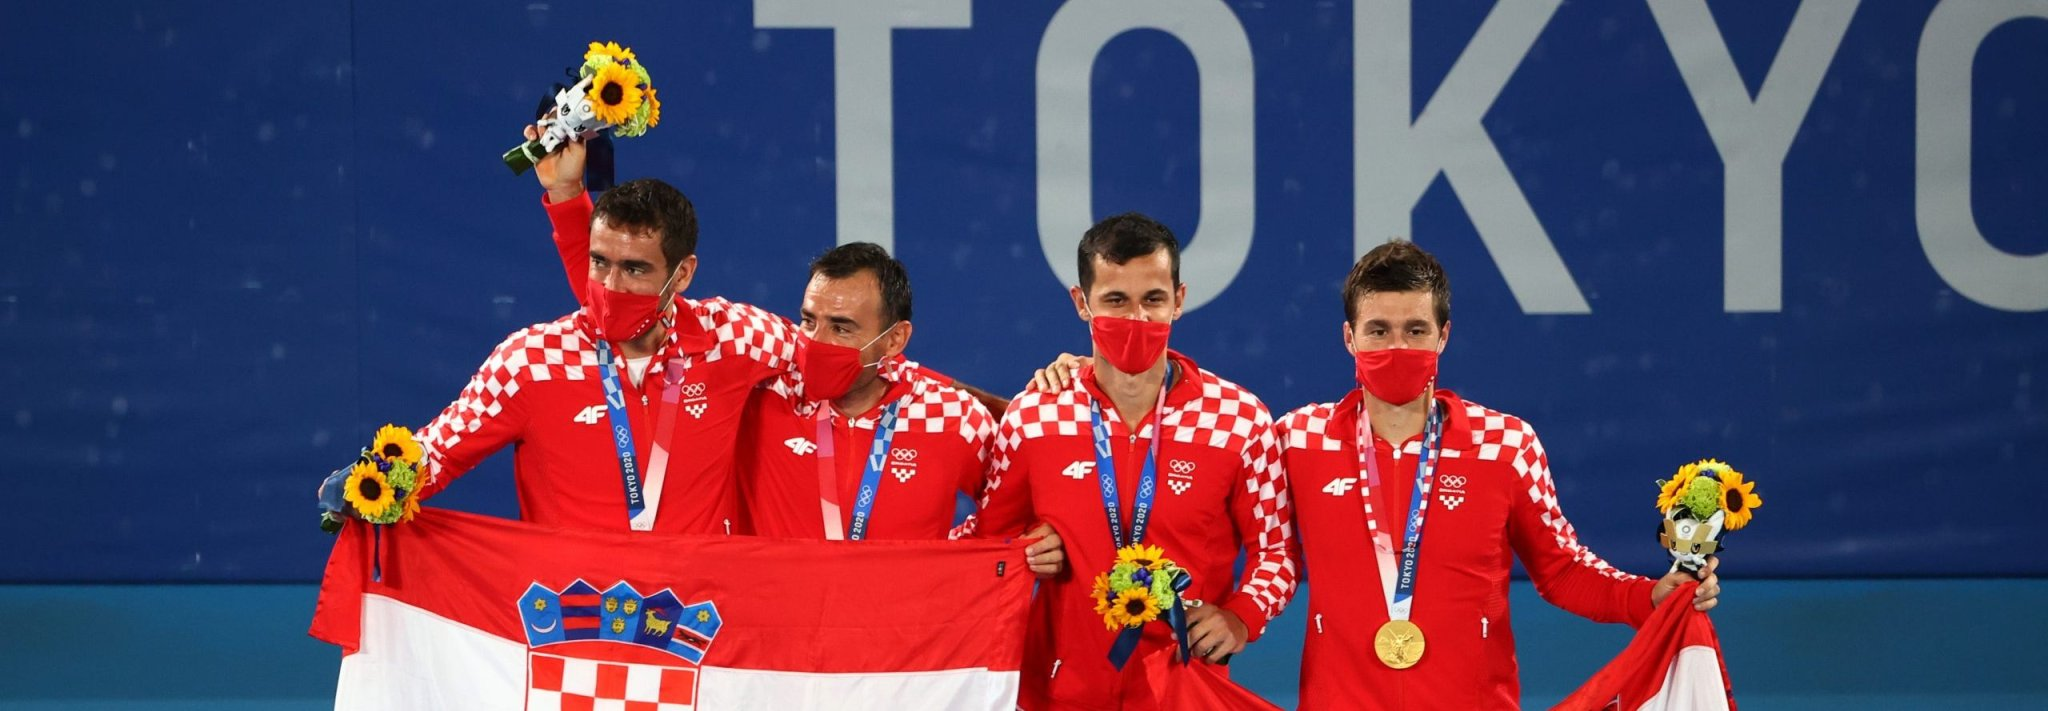 Olympics-Tennis-Mektic and Pavic win first tennis gold for Croatia